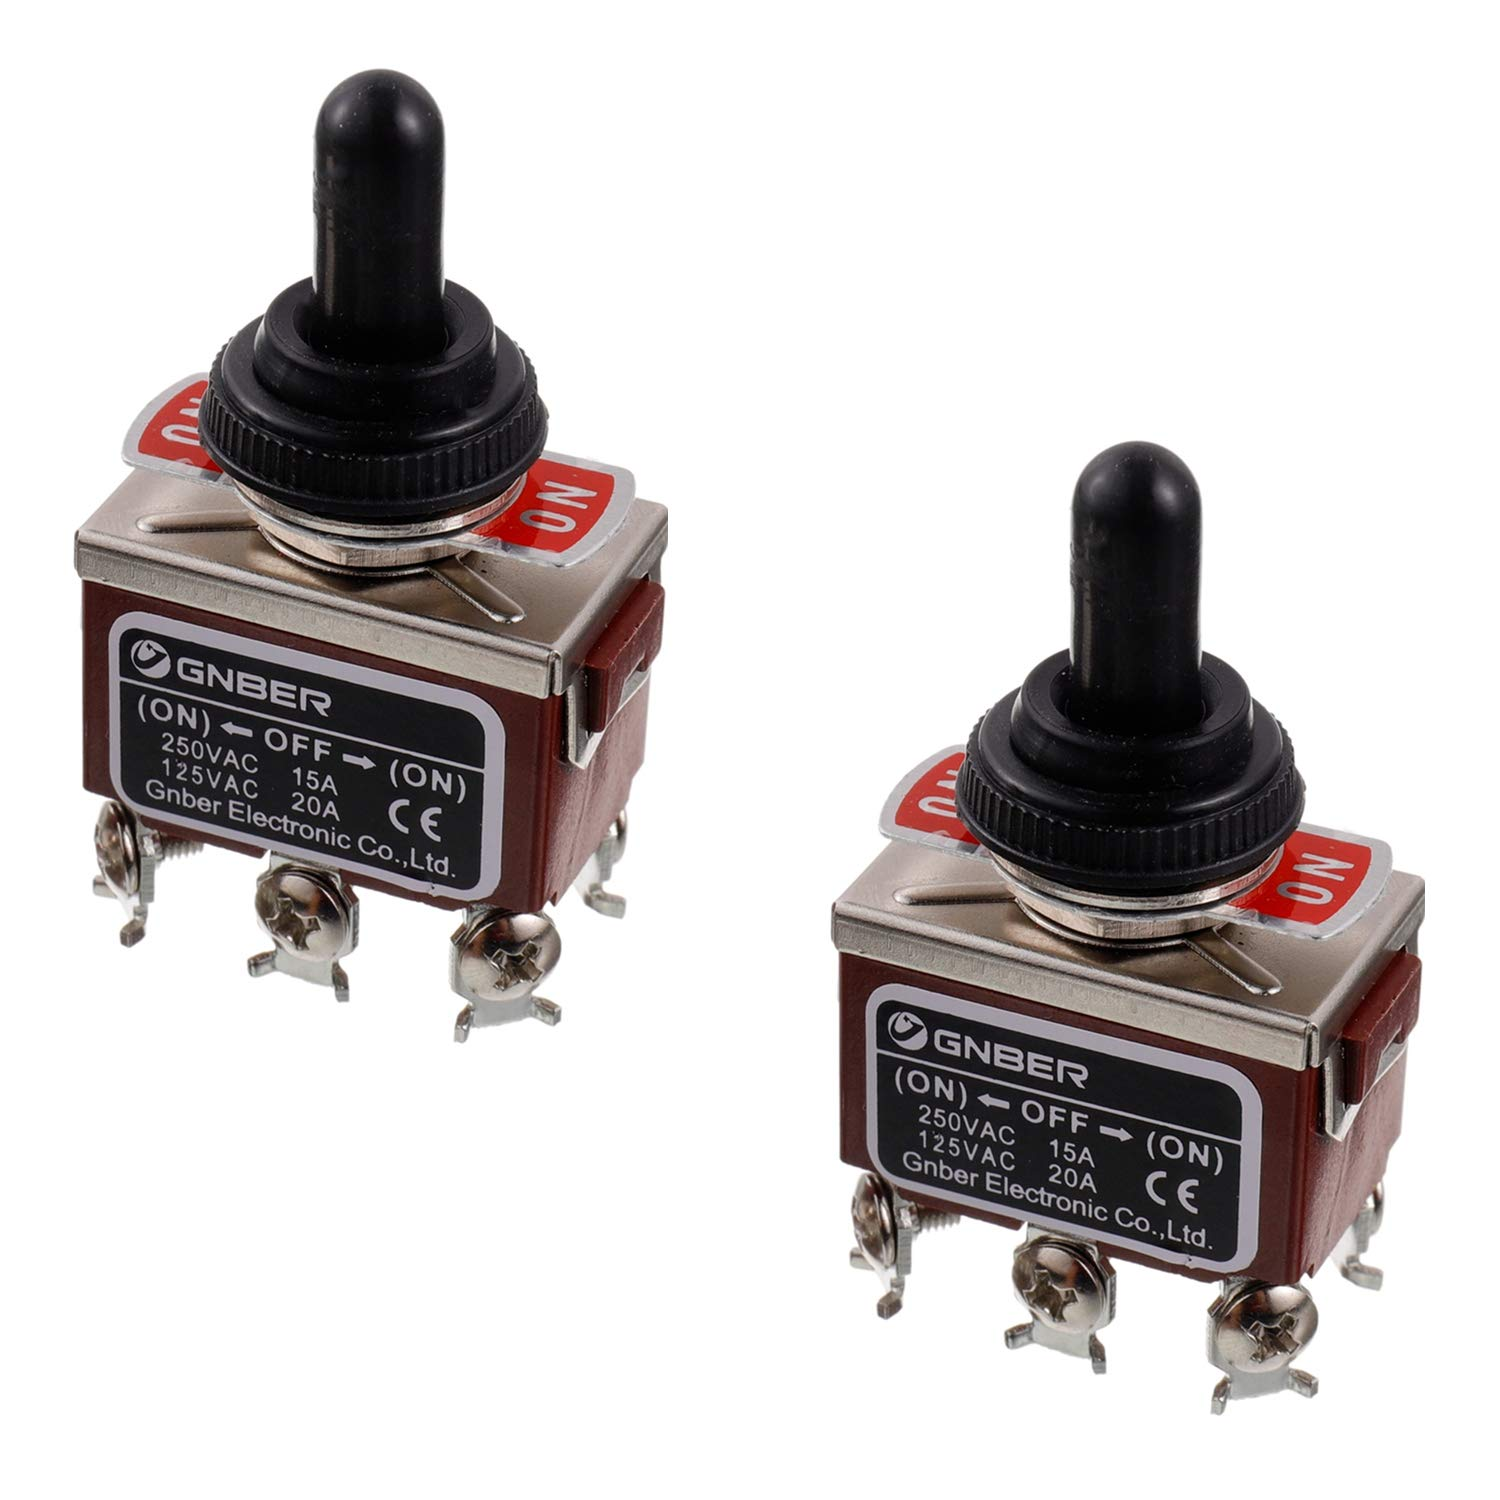 3 PCS 6-pin 3 Position Momentary On-Off-Momentary On Toggle Switches 15A 250V